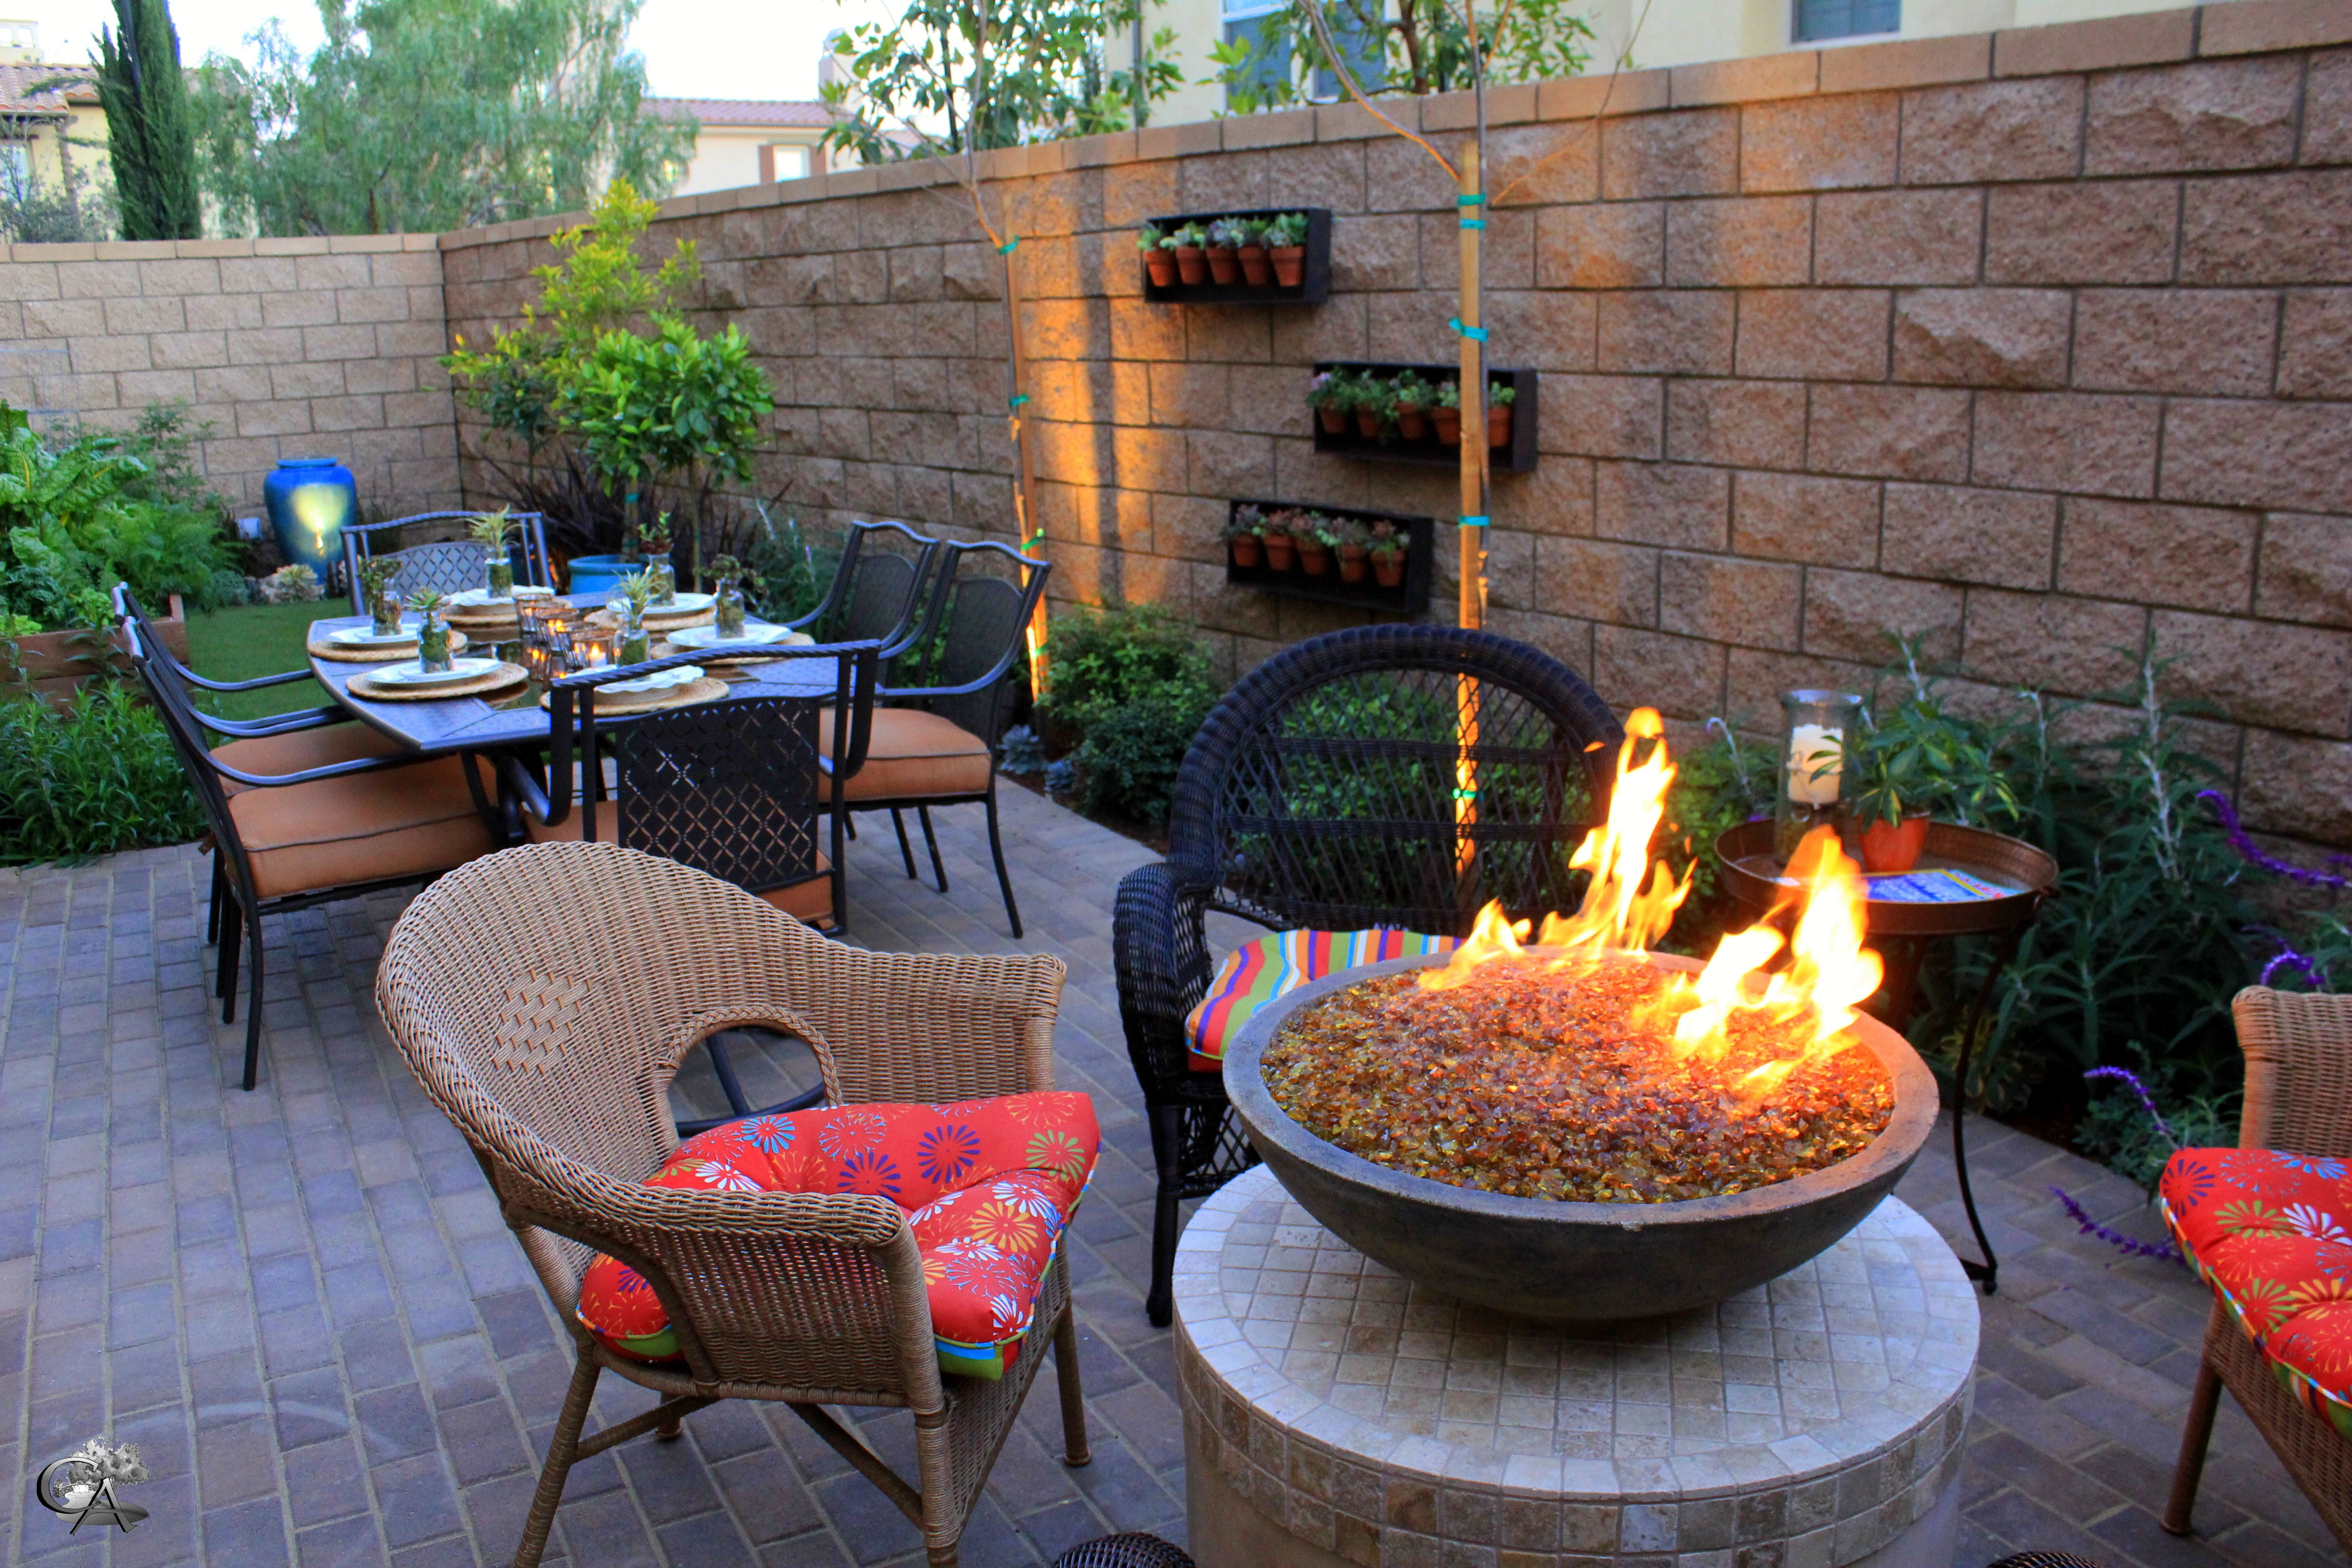 Outdoor Fire Pit Small Outdoor Space Outdoor Furniture Outdoor Sitting Out Door Dining Landscape Design Bu Backyard Outdoor Fire Pit Landscape Construction Mini backyard fire pit